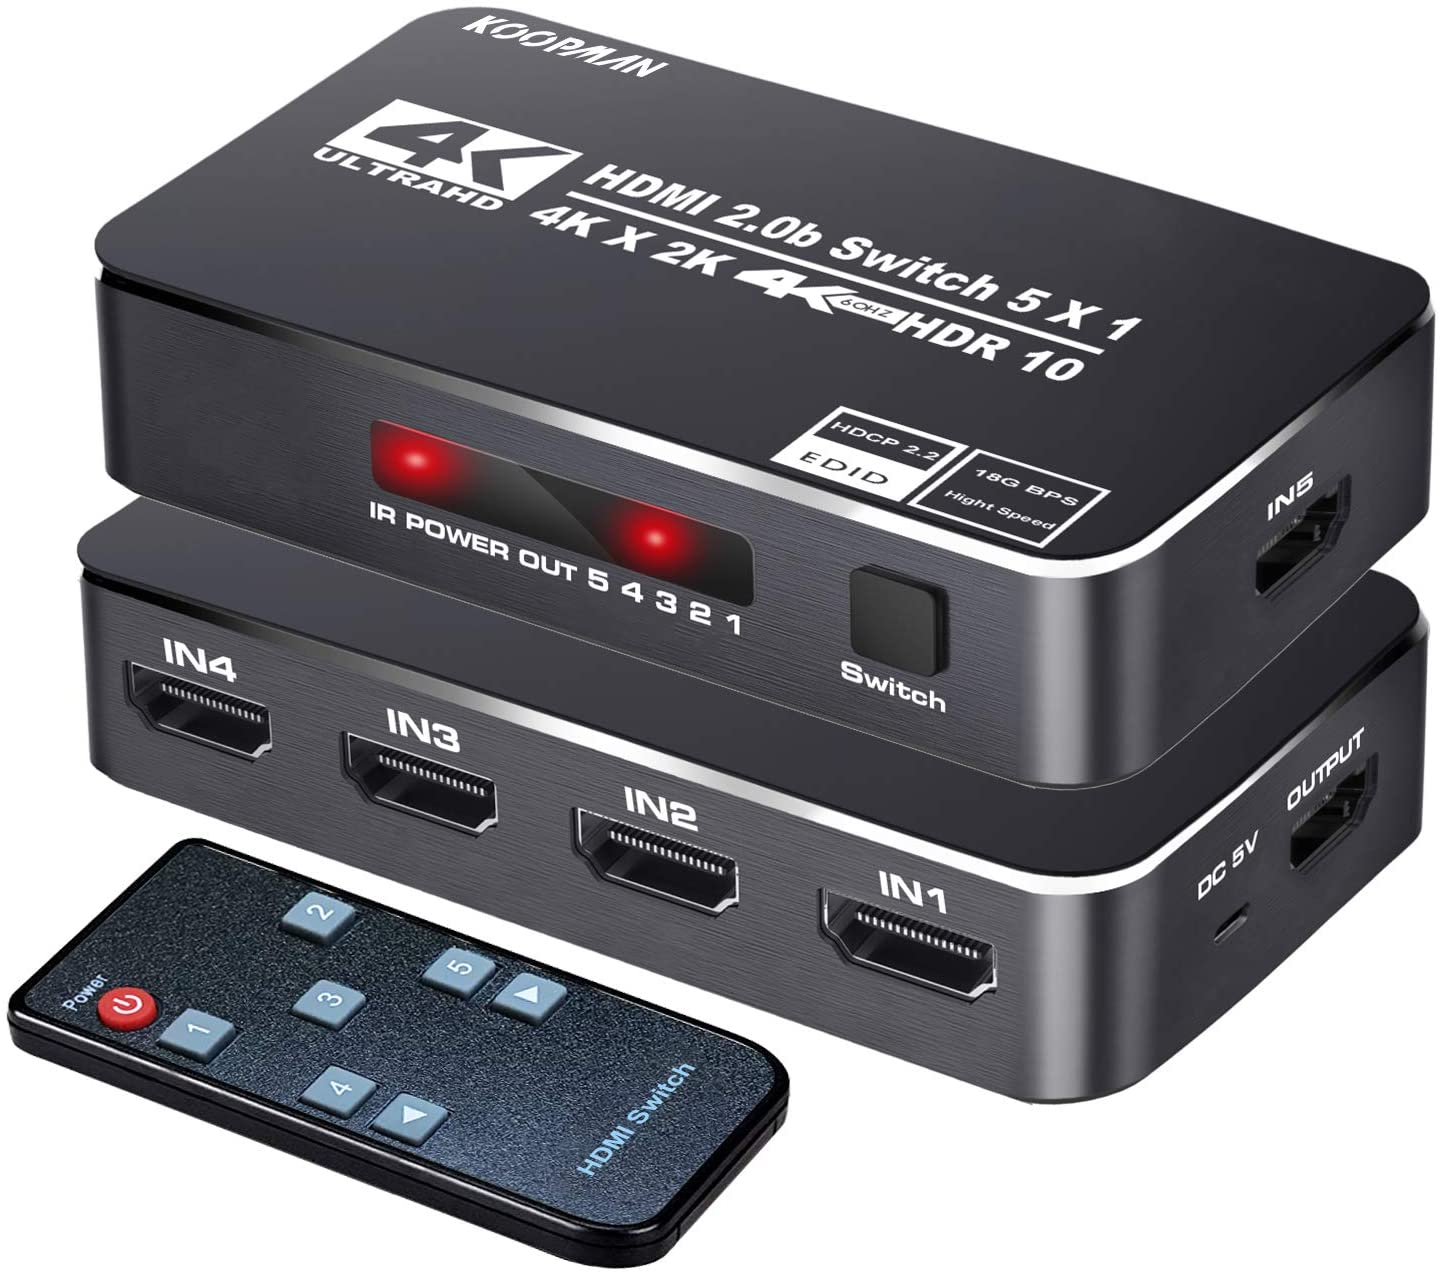 4K HDR HDMI Switch, Koopman 5 Ports 4K 60Hz HDMI 2.0 Switcher Selector with IR Remote, Supports Ultra HD Dolby Vision, High Speed (Max to 18.5Gbps), HDR10, HDCP 2.2 & 3D: Home Audio & Theater